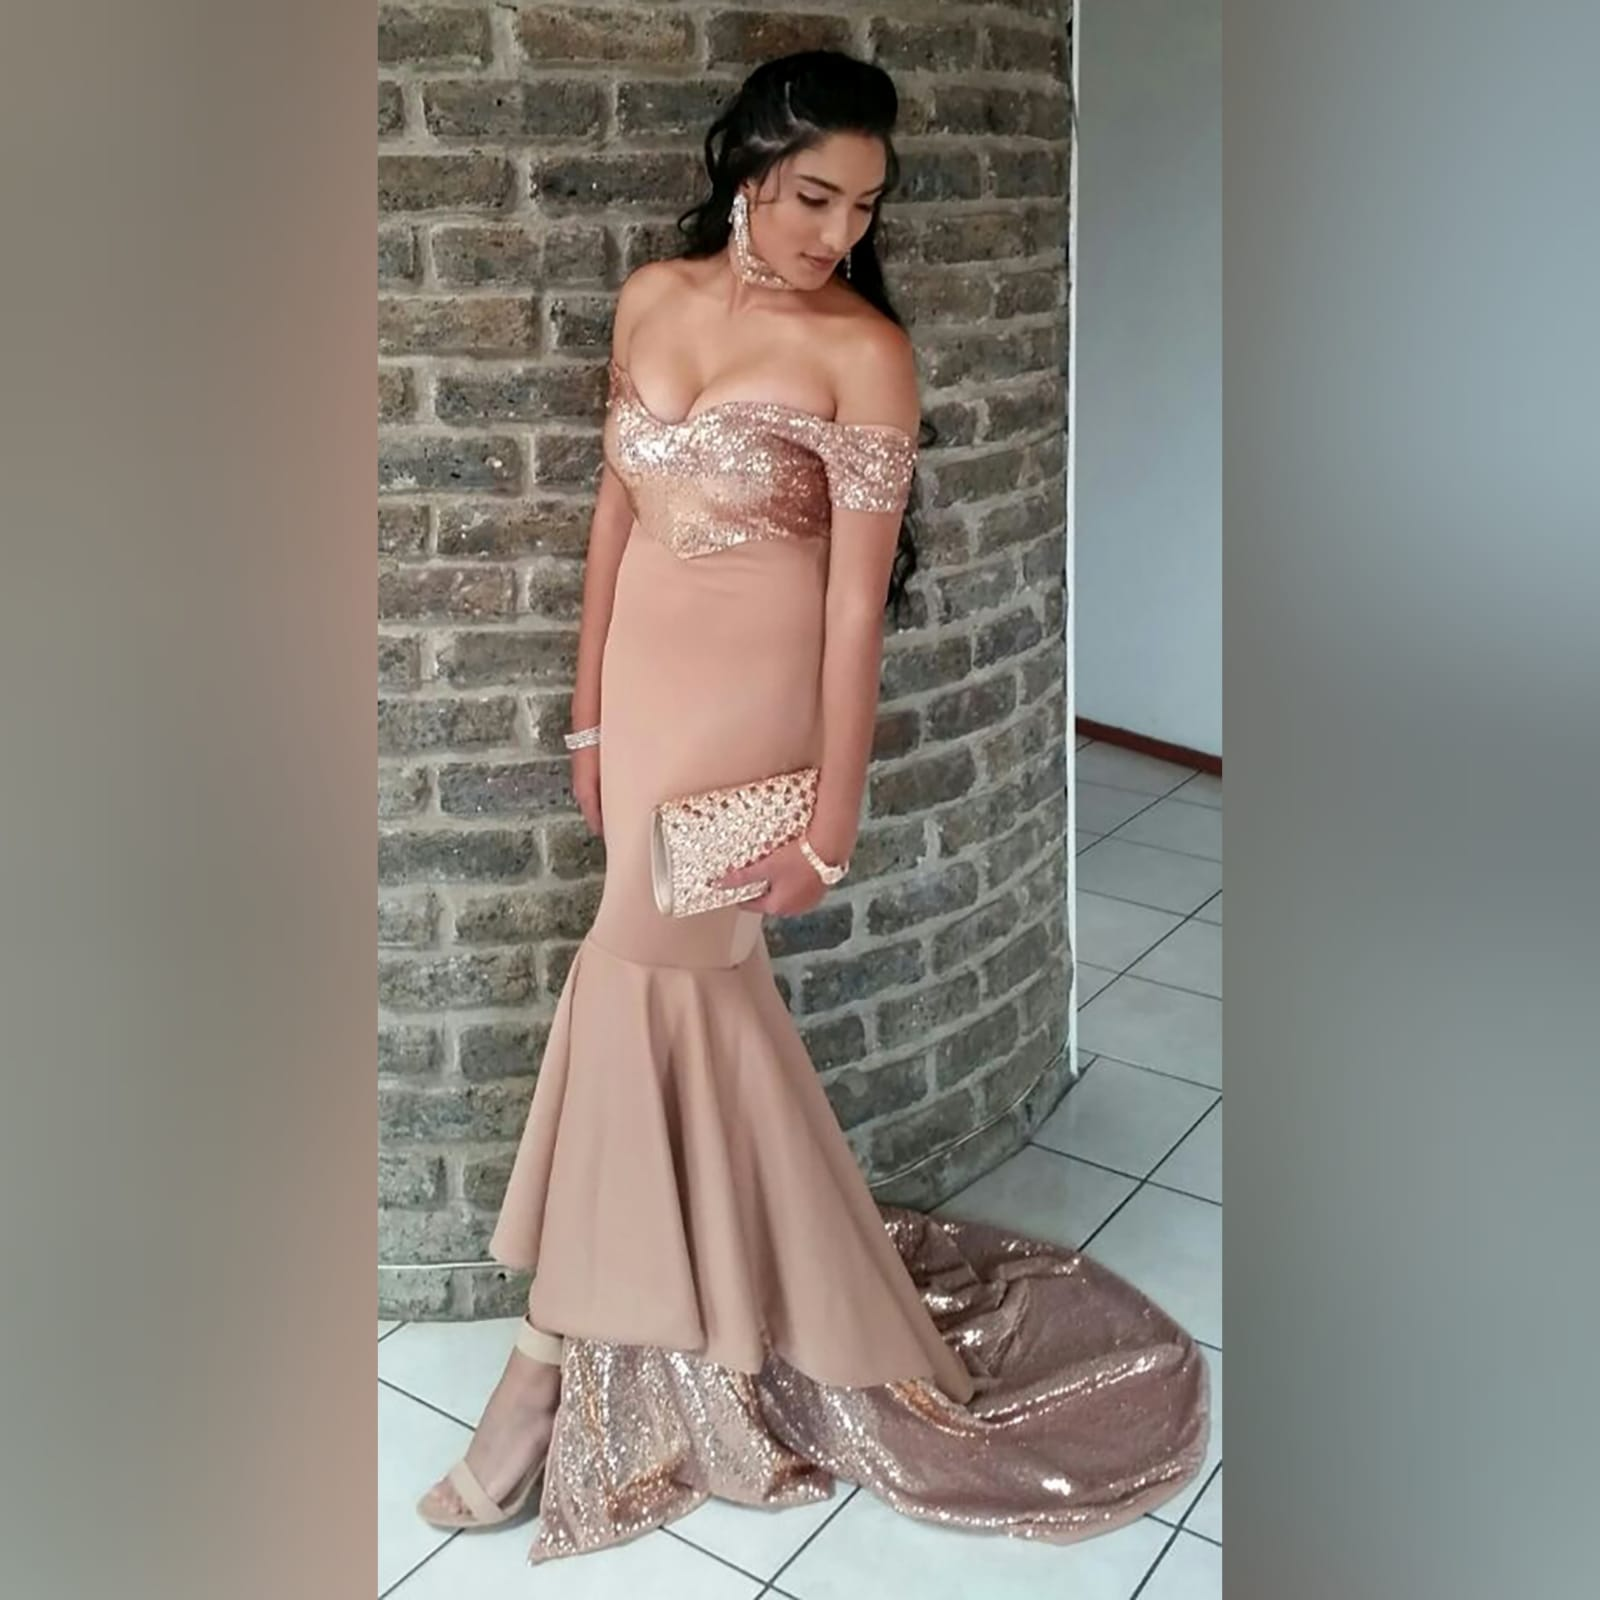 Rose gold 2 tone mermaid prom dress 1 rose gold 2 tone mermaid prom dress, off-shoulder dress with a sweetheart neckline and off-shoulder short sleeves. Double layer from knee down, with sequins, creating a train with a slit int the front middle. Comes with a matching choker.